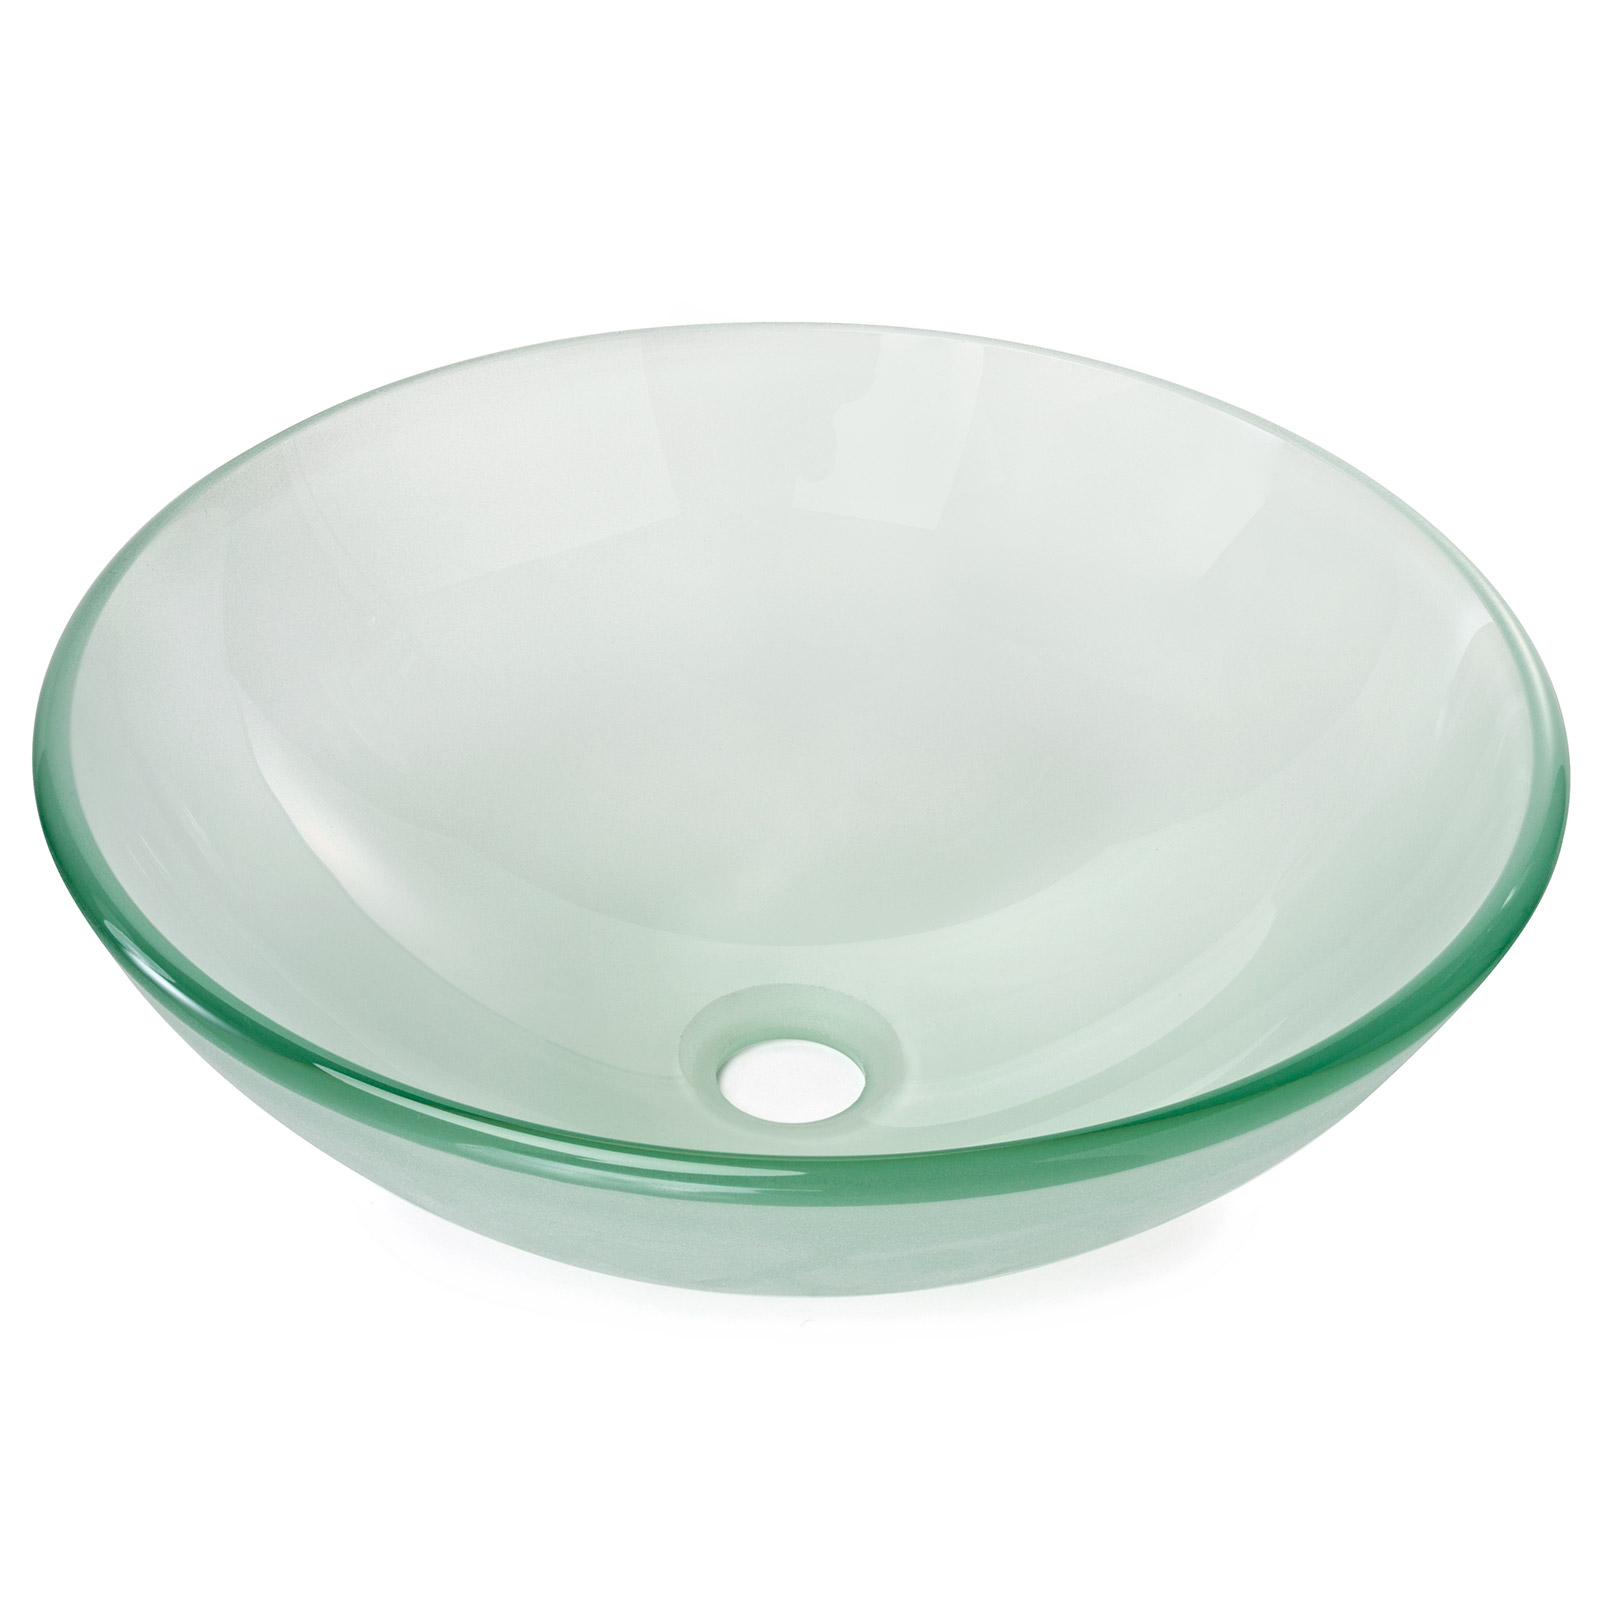 Details about Frosted Glass Round Bathroom Vessel Sink